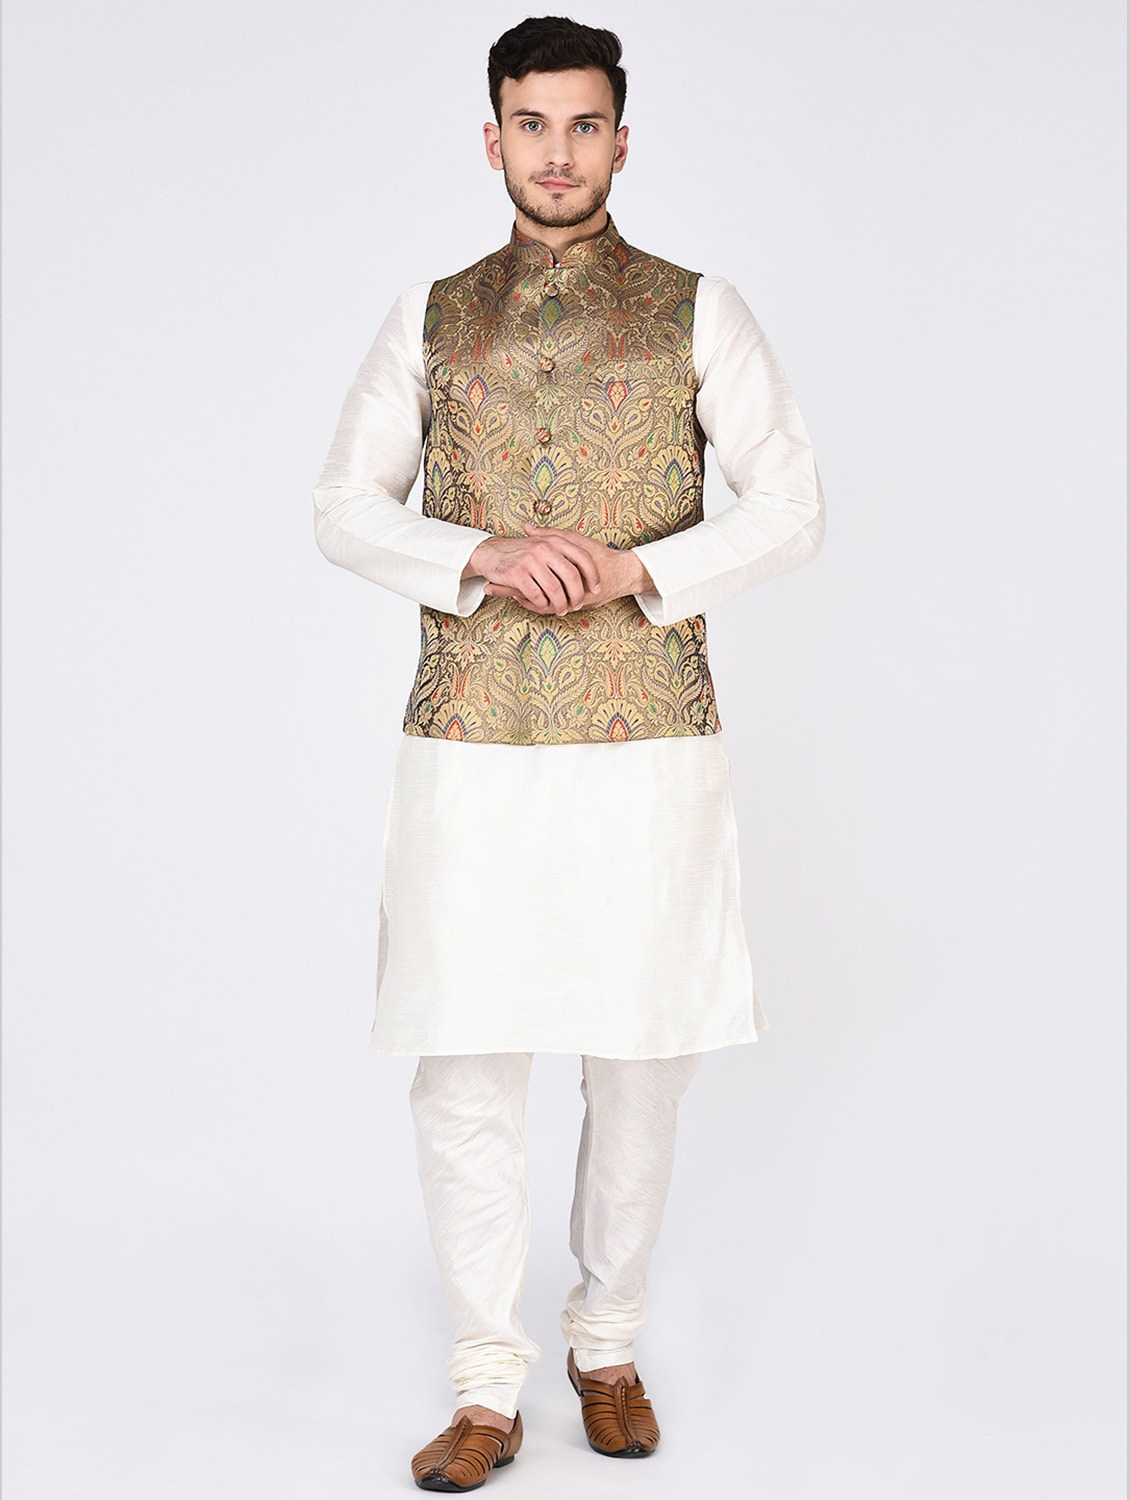 1fd8c74b6 Buy Cream Dupion Kurta Pyjama Set With Nehru Jacket for Men from Tag 7 for  ₹3117 at 55% off